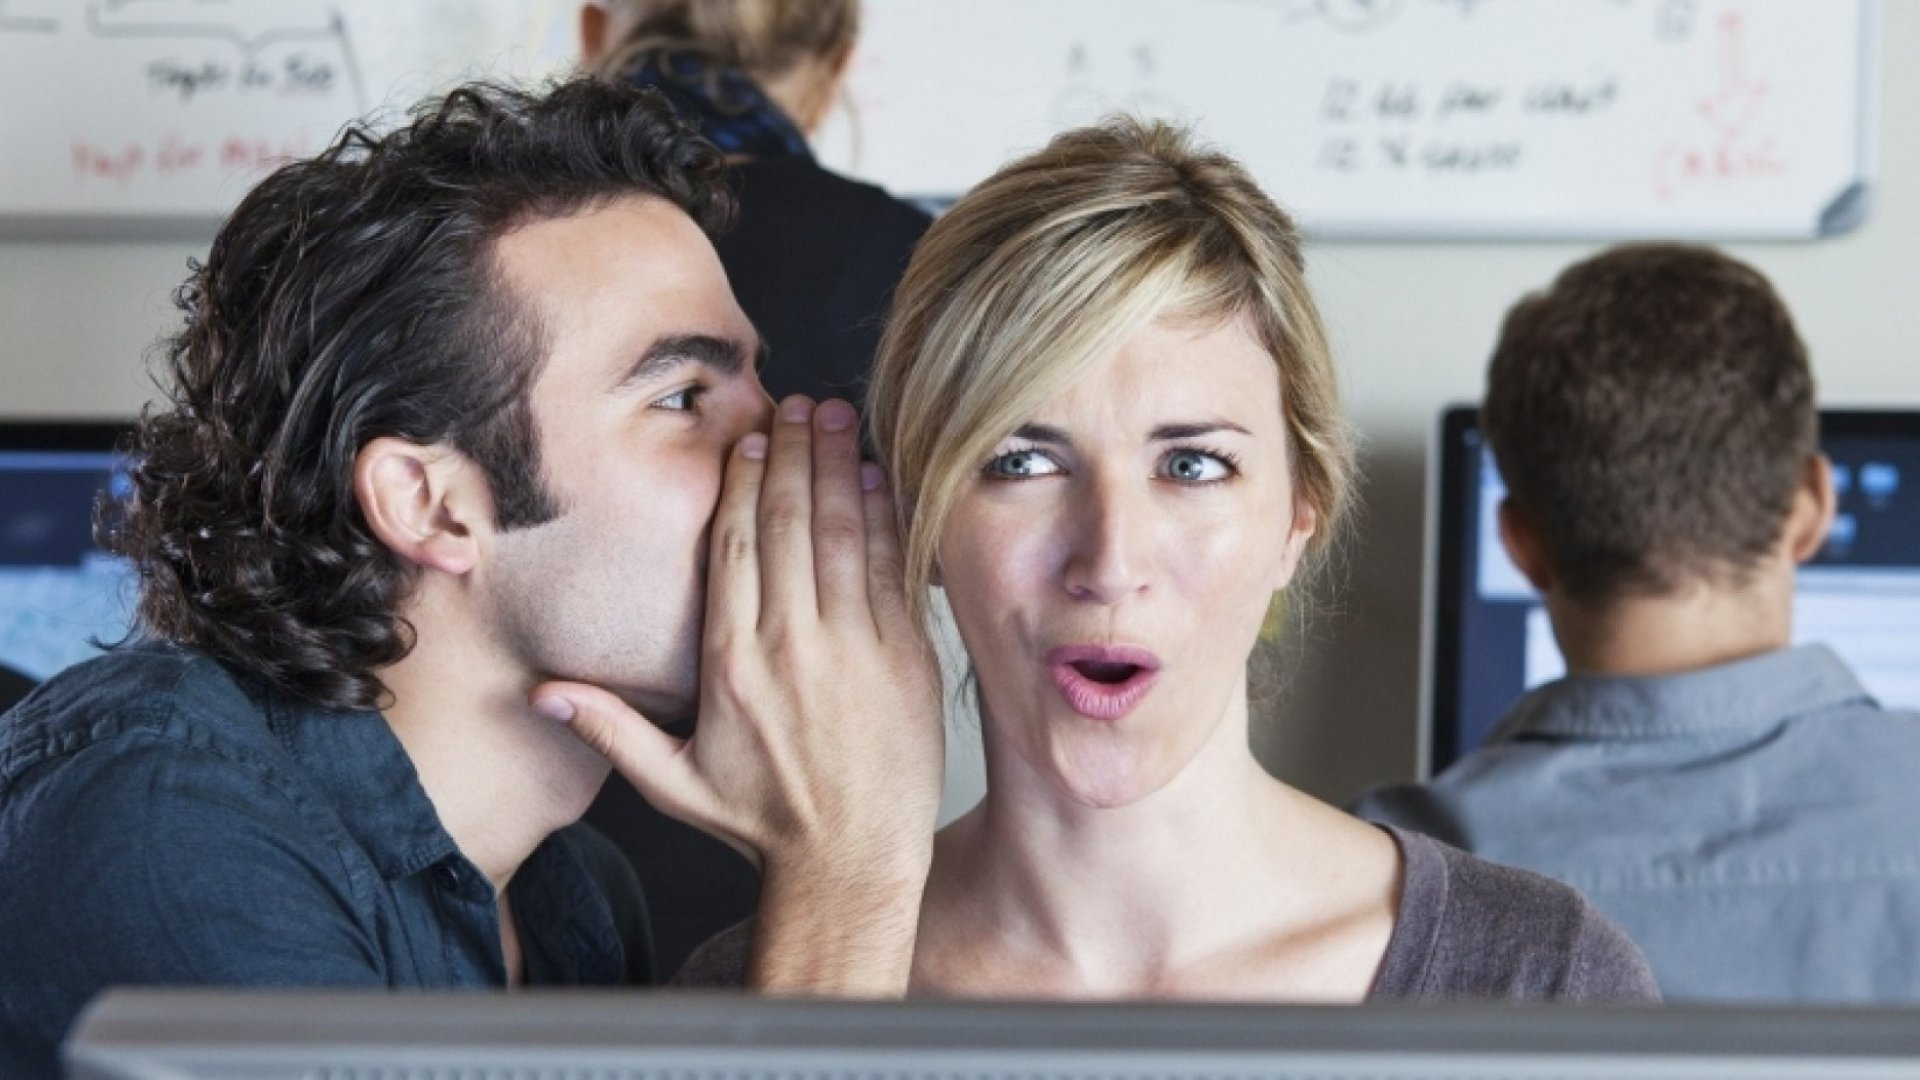 How Can I Stop Gossiping at Work?